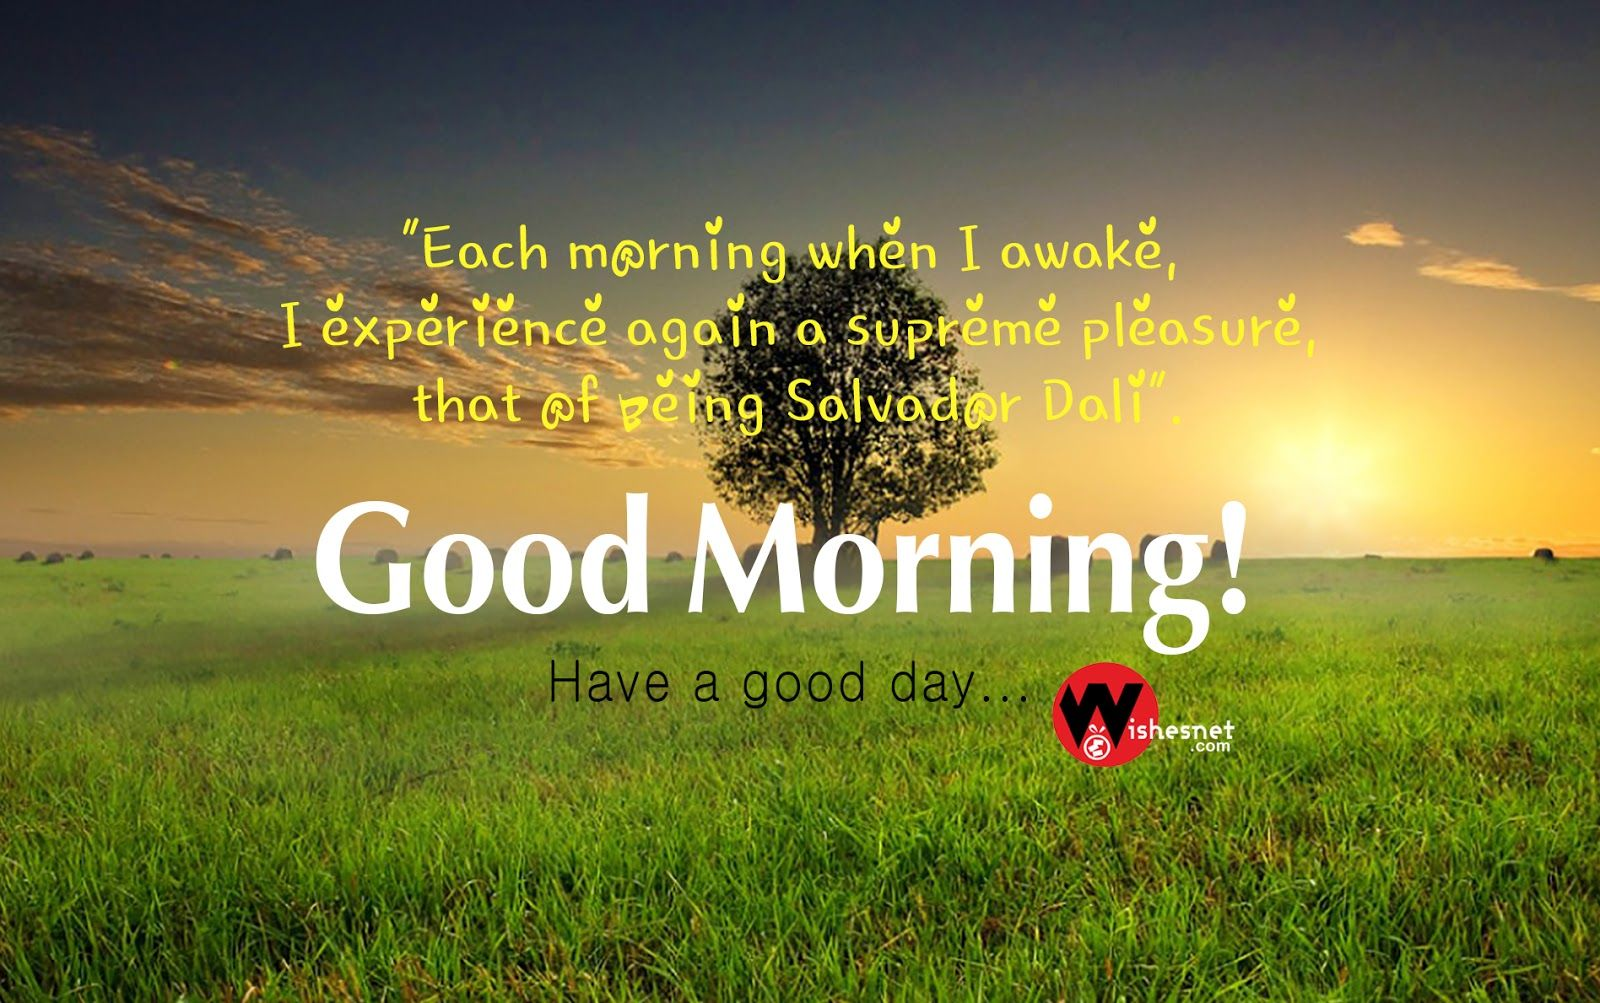 Good Morning Nature Images Hd With Nature Quotes Good Morning Nature Good Morning Nature Quotes Good Morning Greetings Images